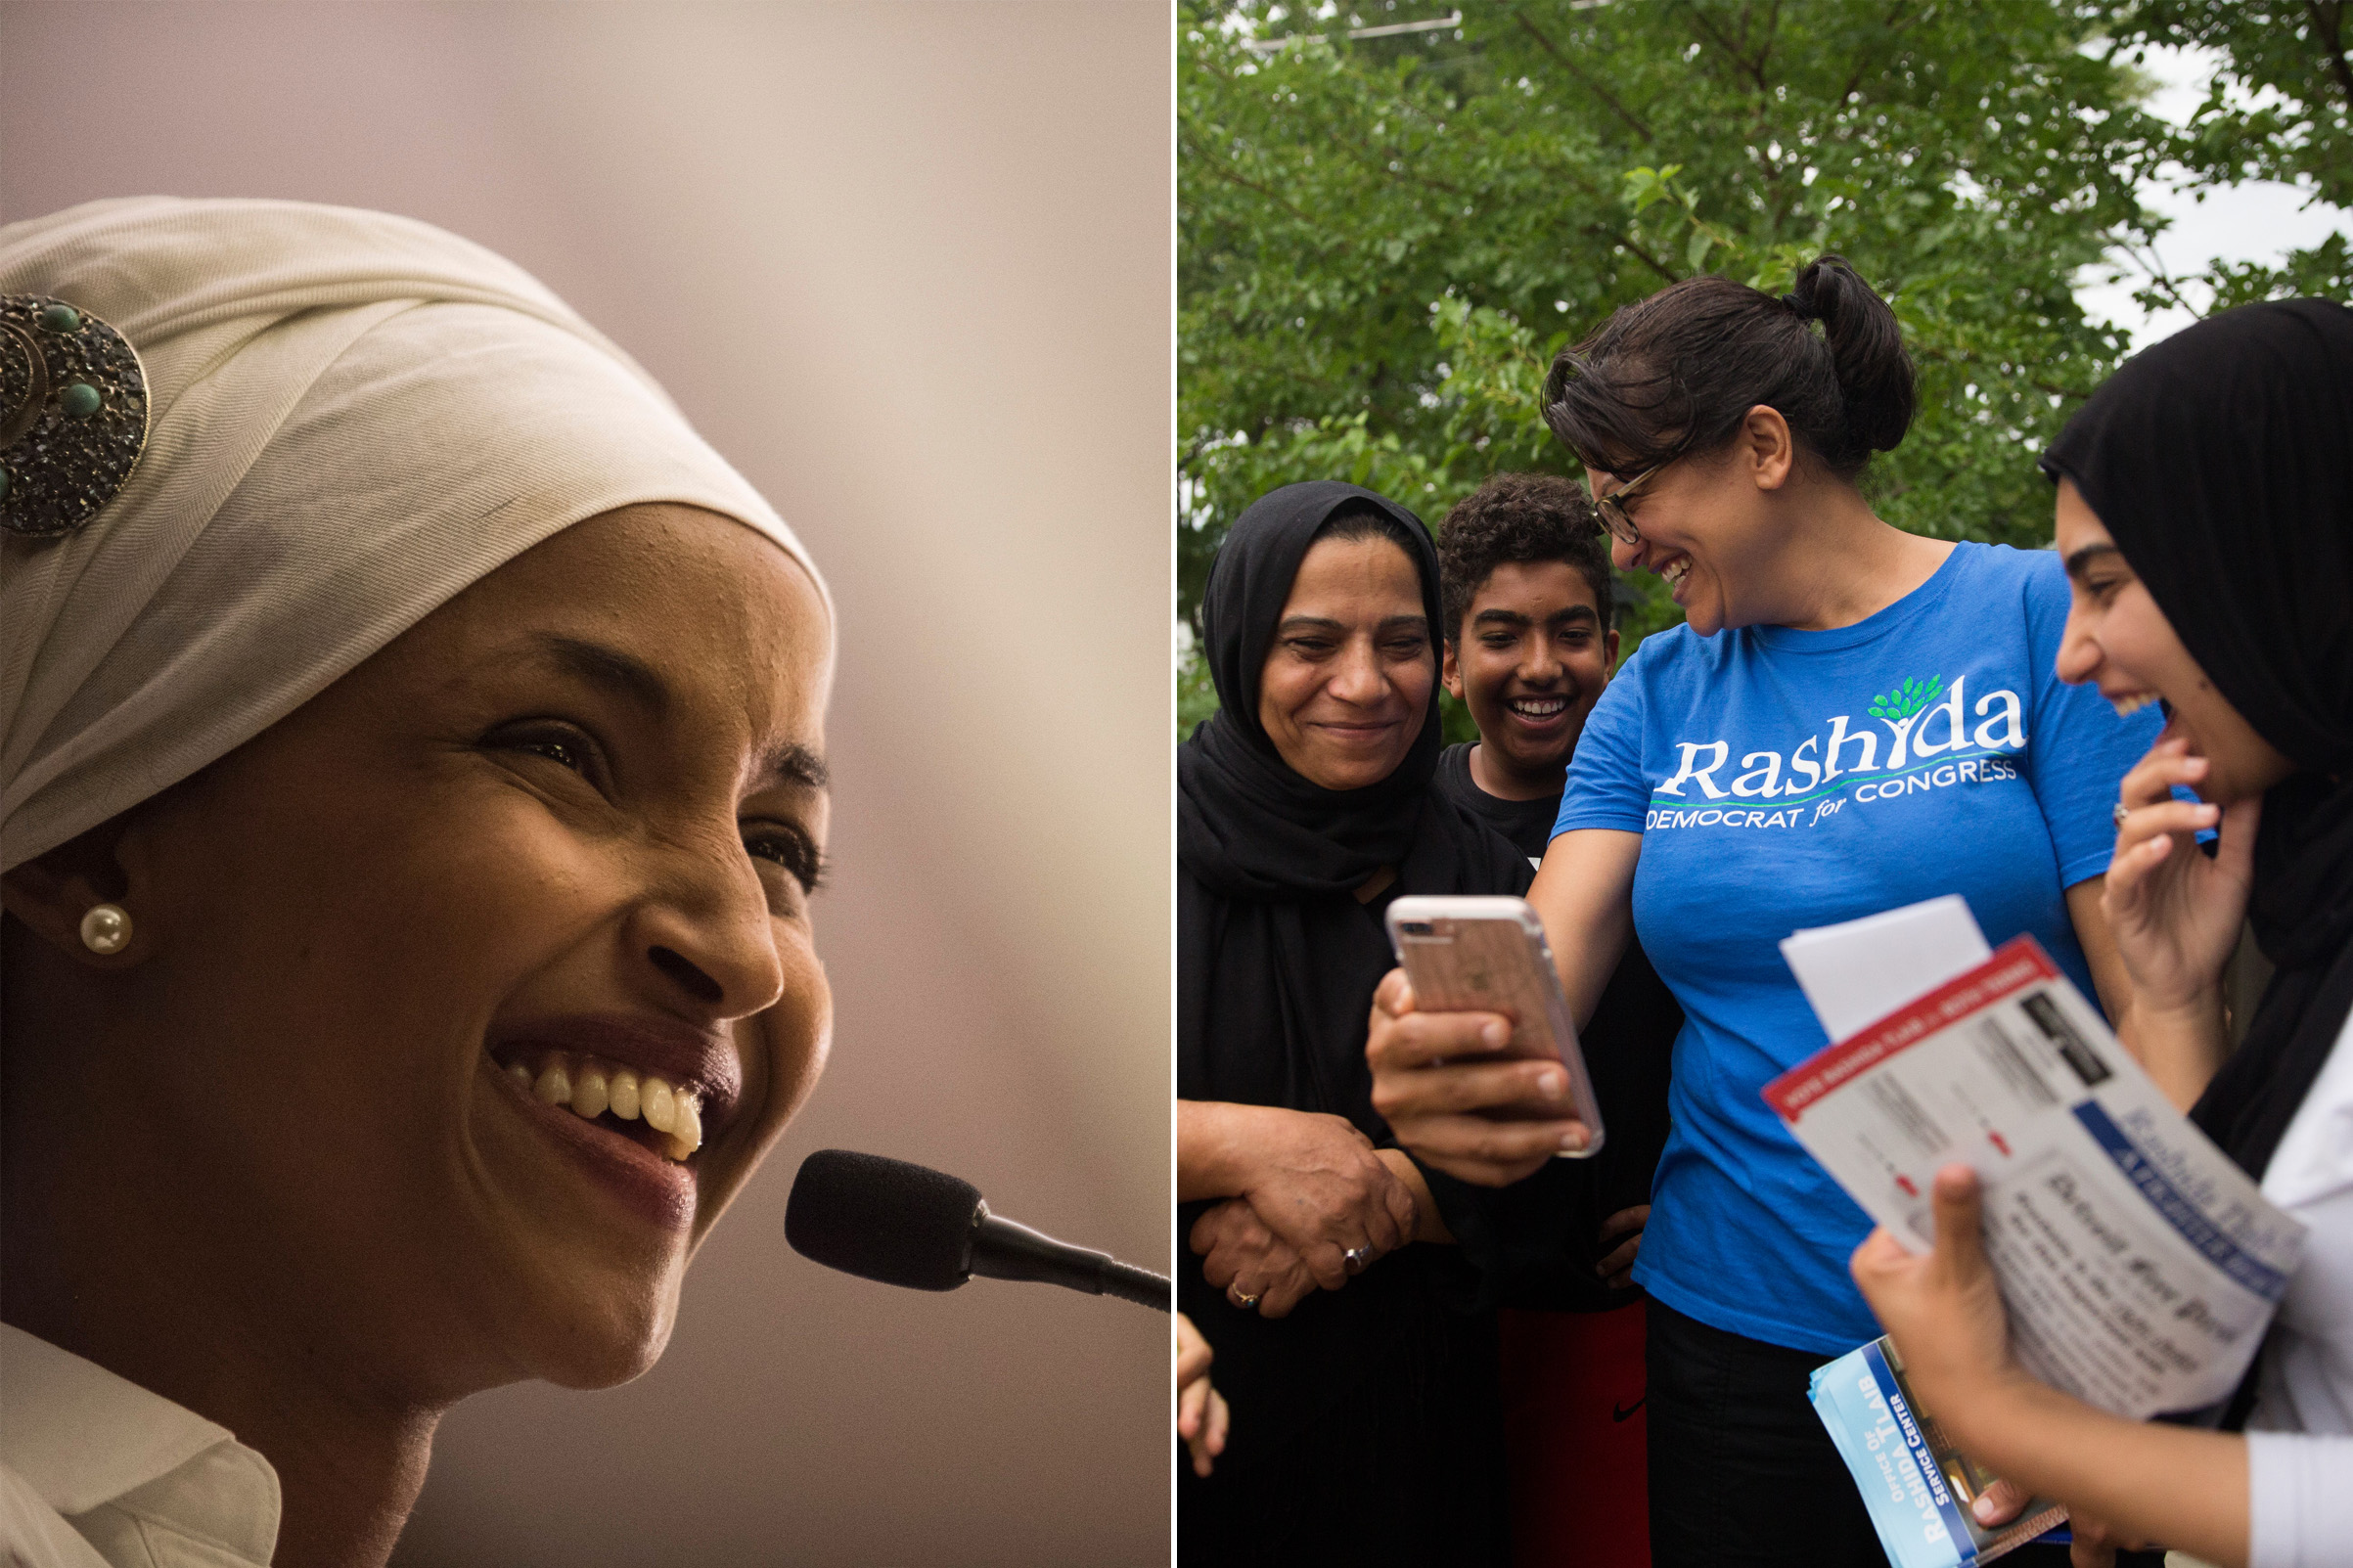 Ilhan Omar, a candidate for State Representative for District 60B in Minnesota, gives an acceptance speech on election night, November 8, 2016 in Minneapolis, Minnesota. Omar, a refugee from Somalia, is the first Somali-American Muslim woman to hold public office; Rashida Tlaib shares a moment with her supporters on the campaign trail.